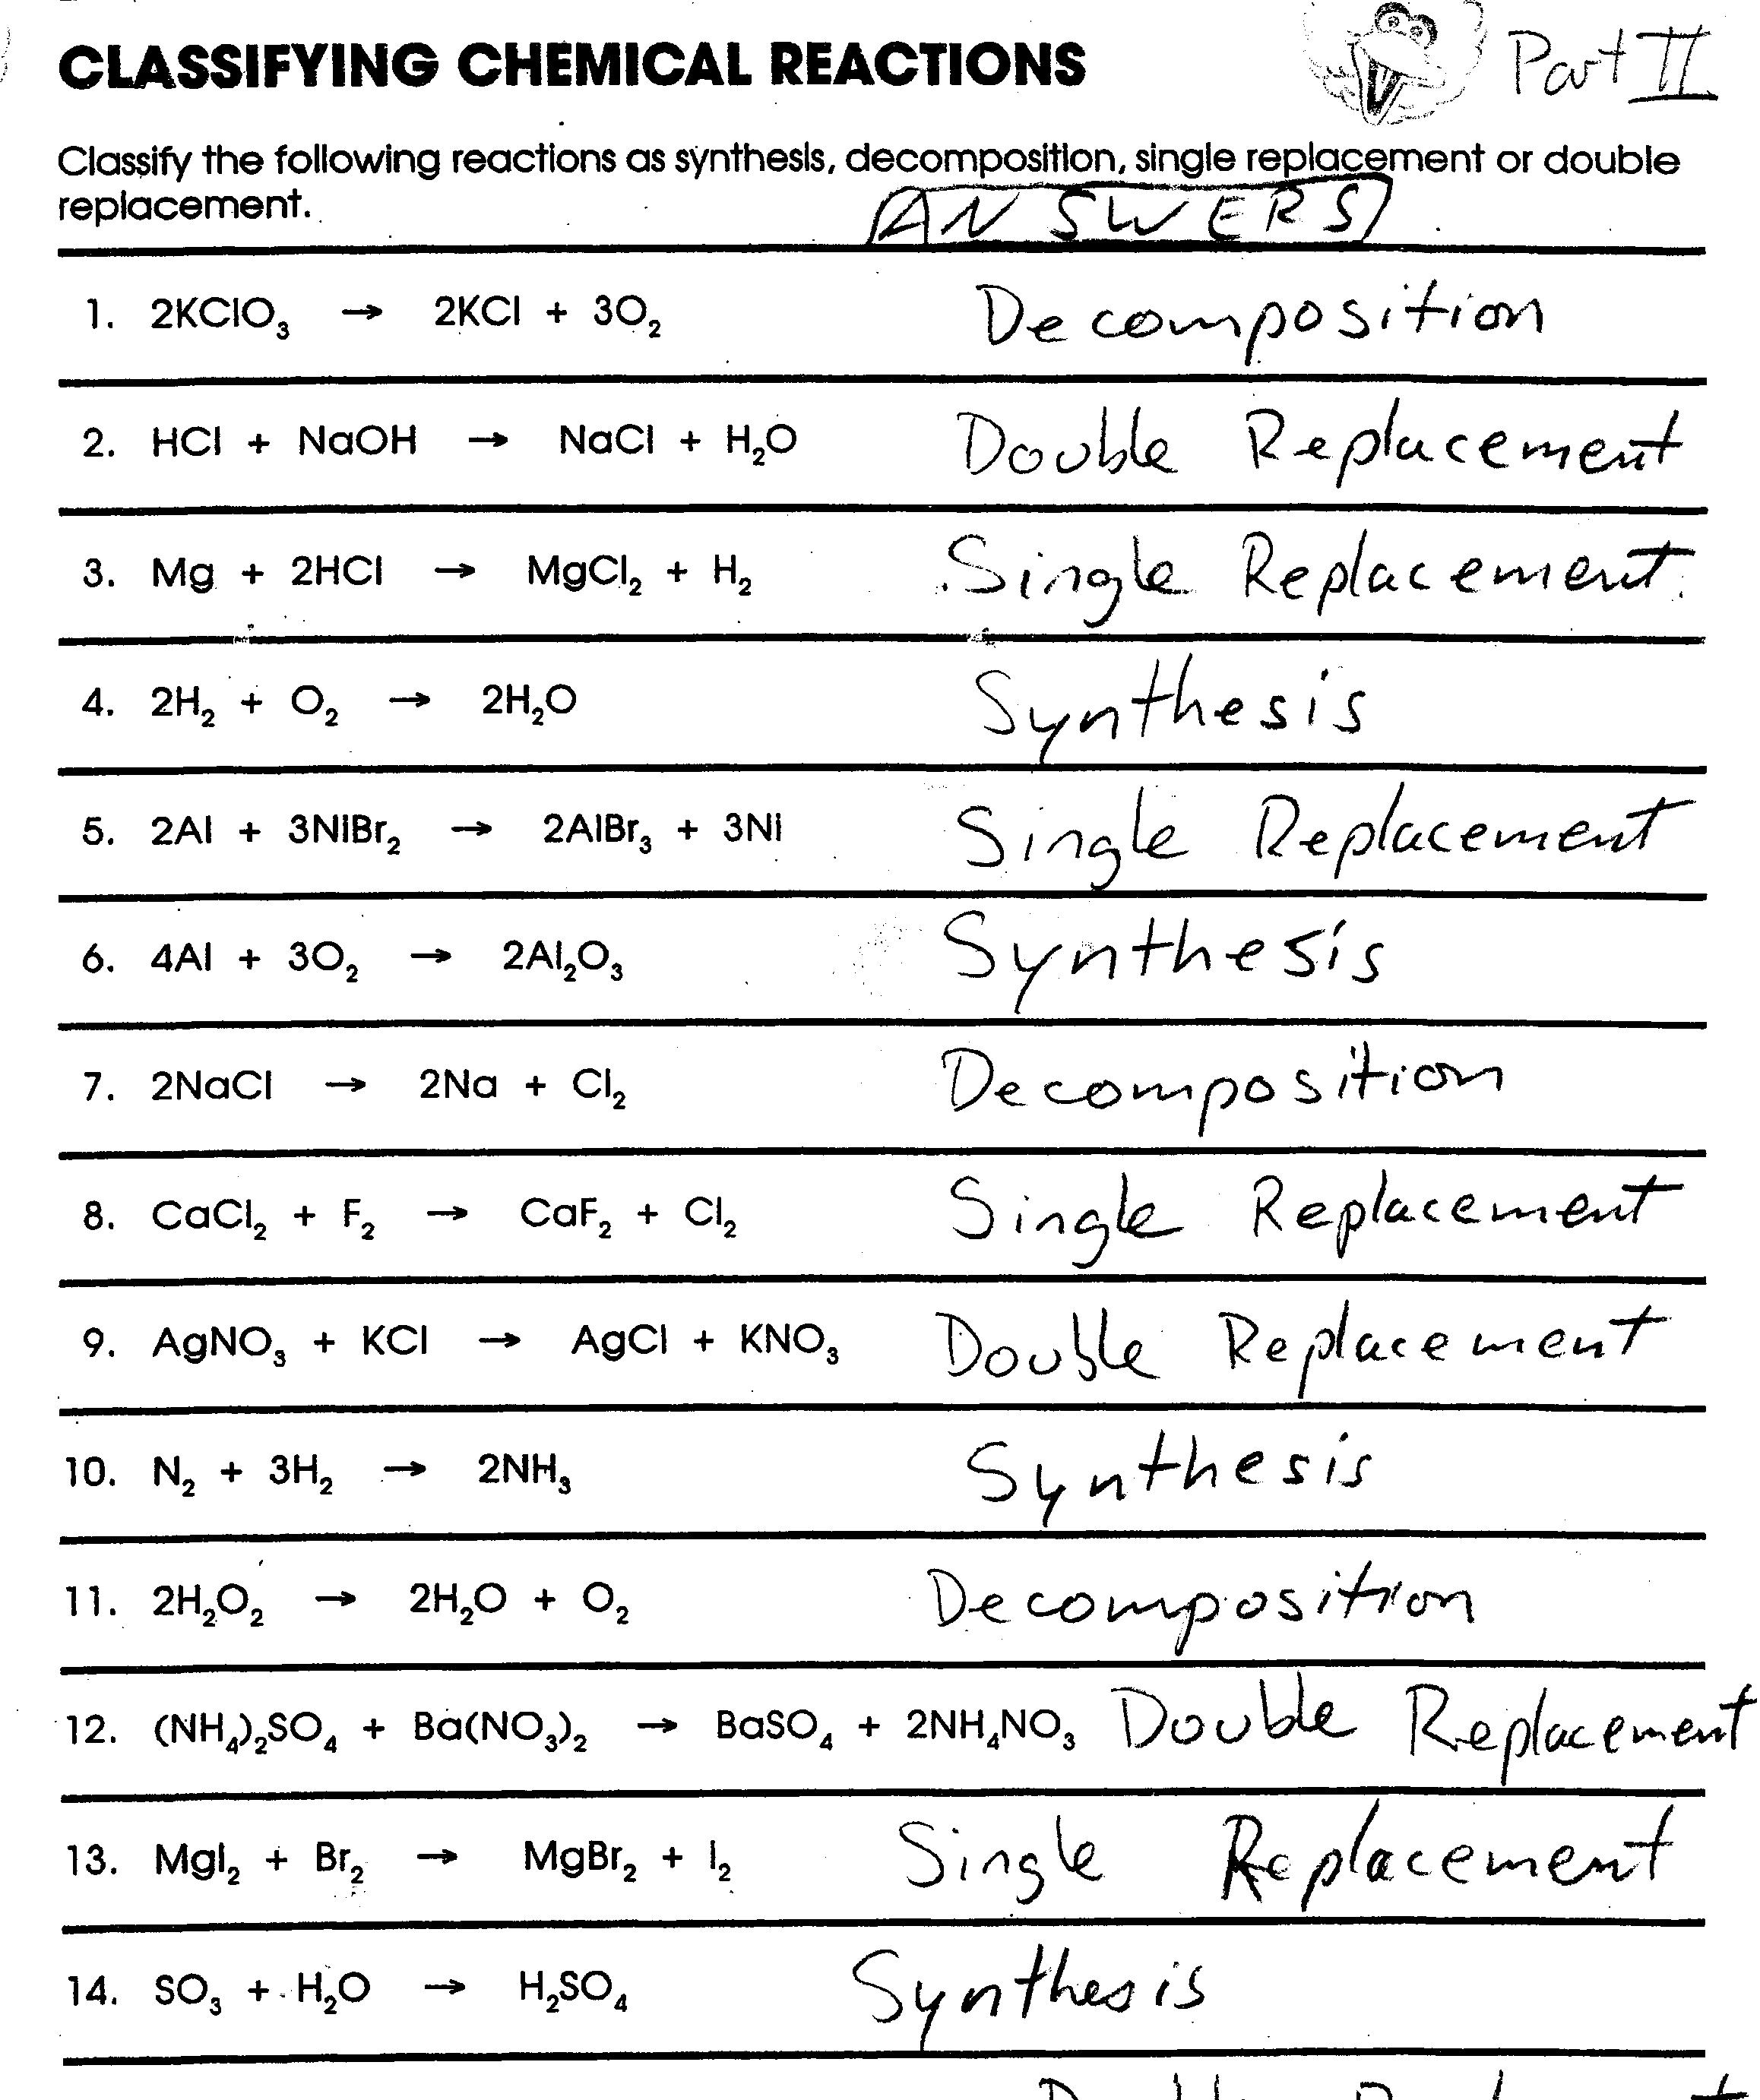 Classifying Chemical Reactions Worksheet Key